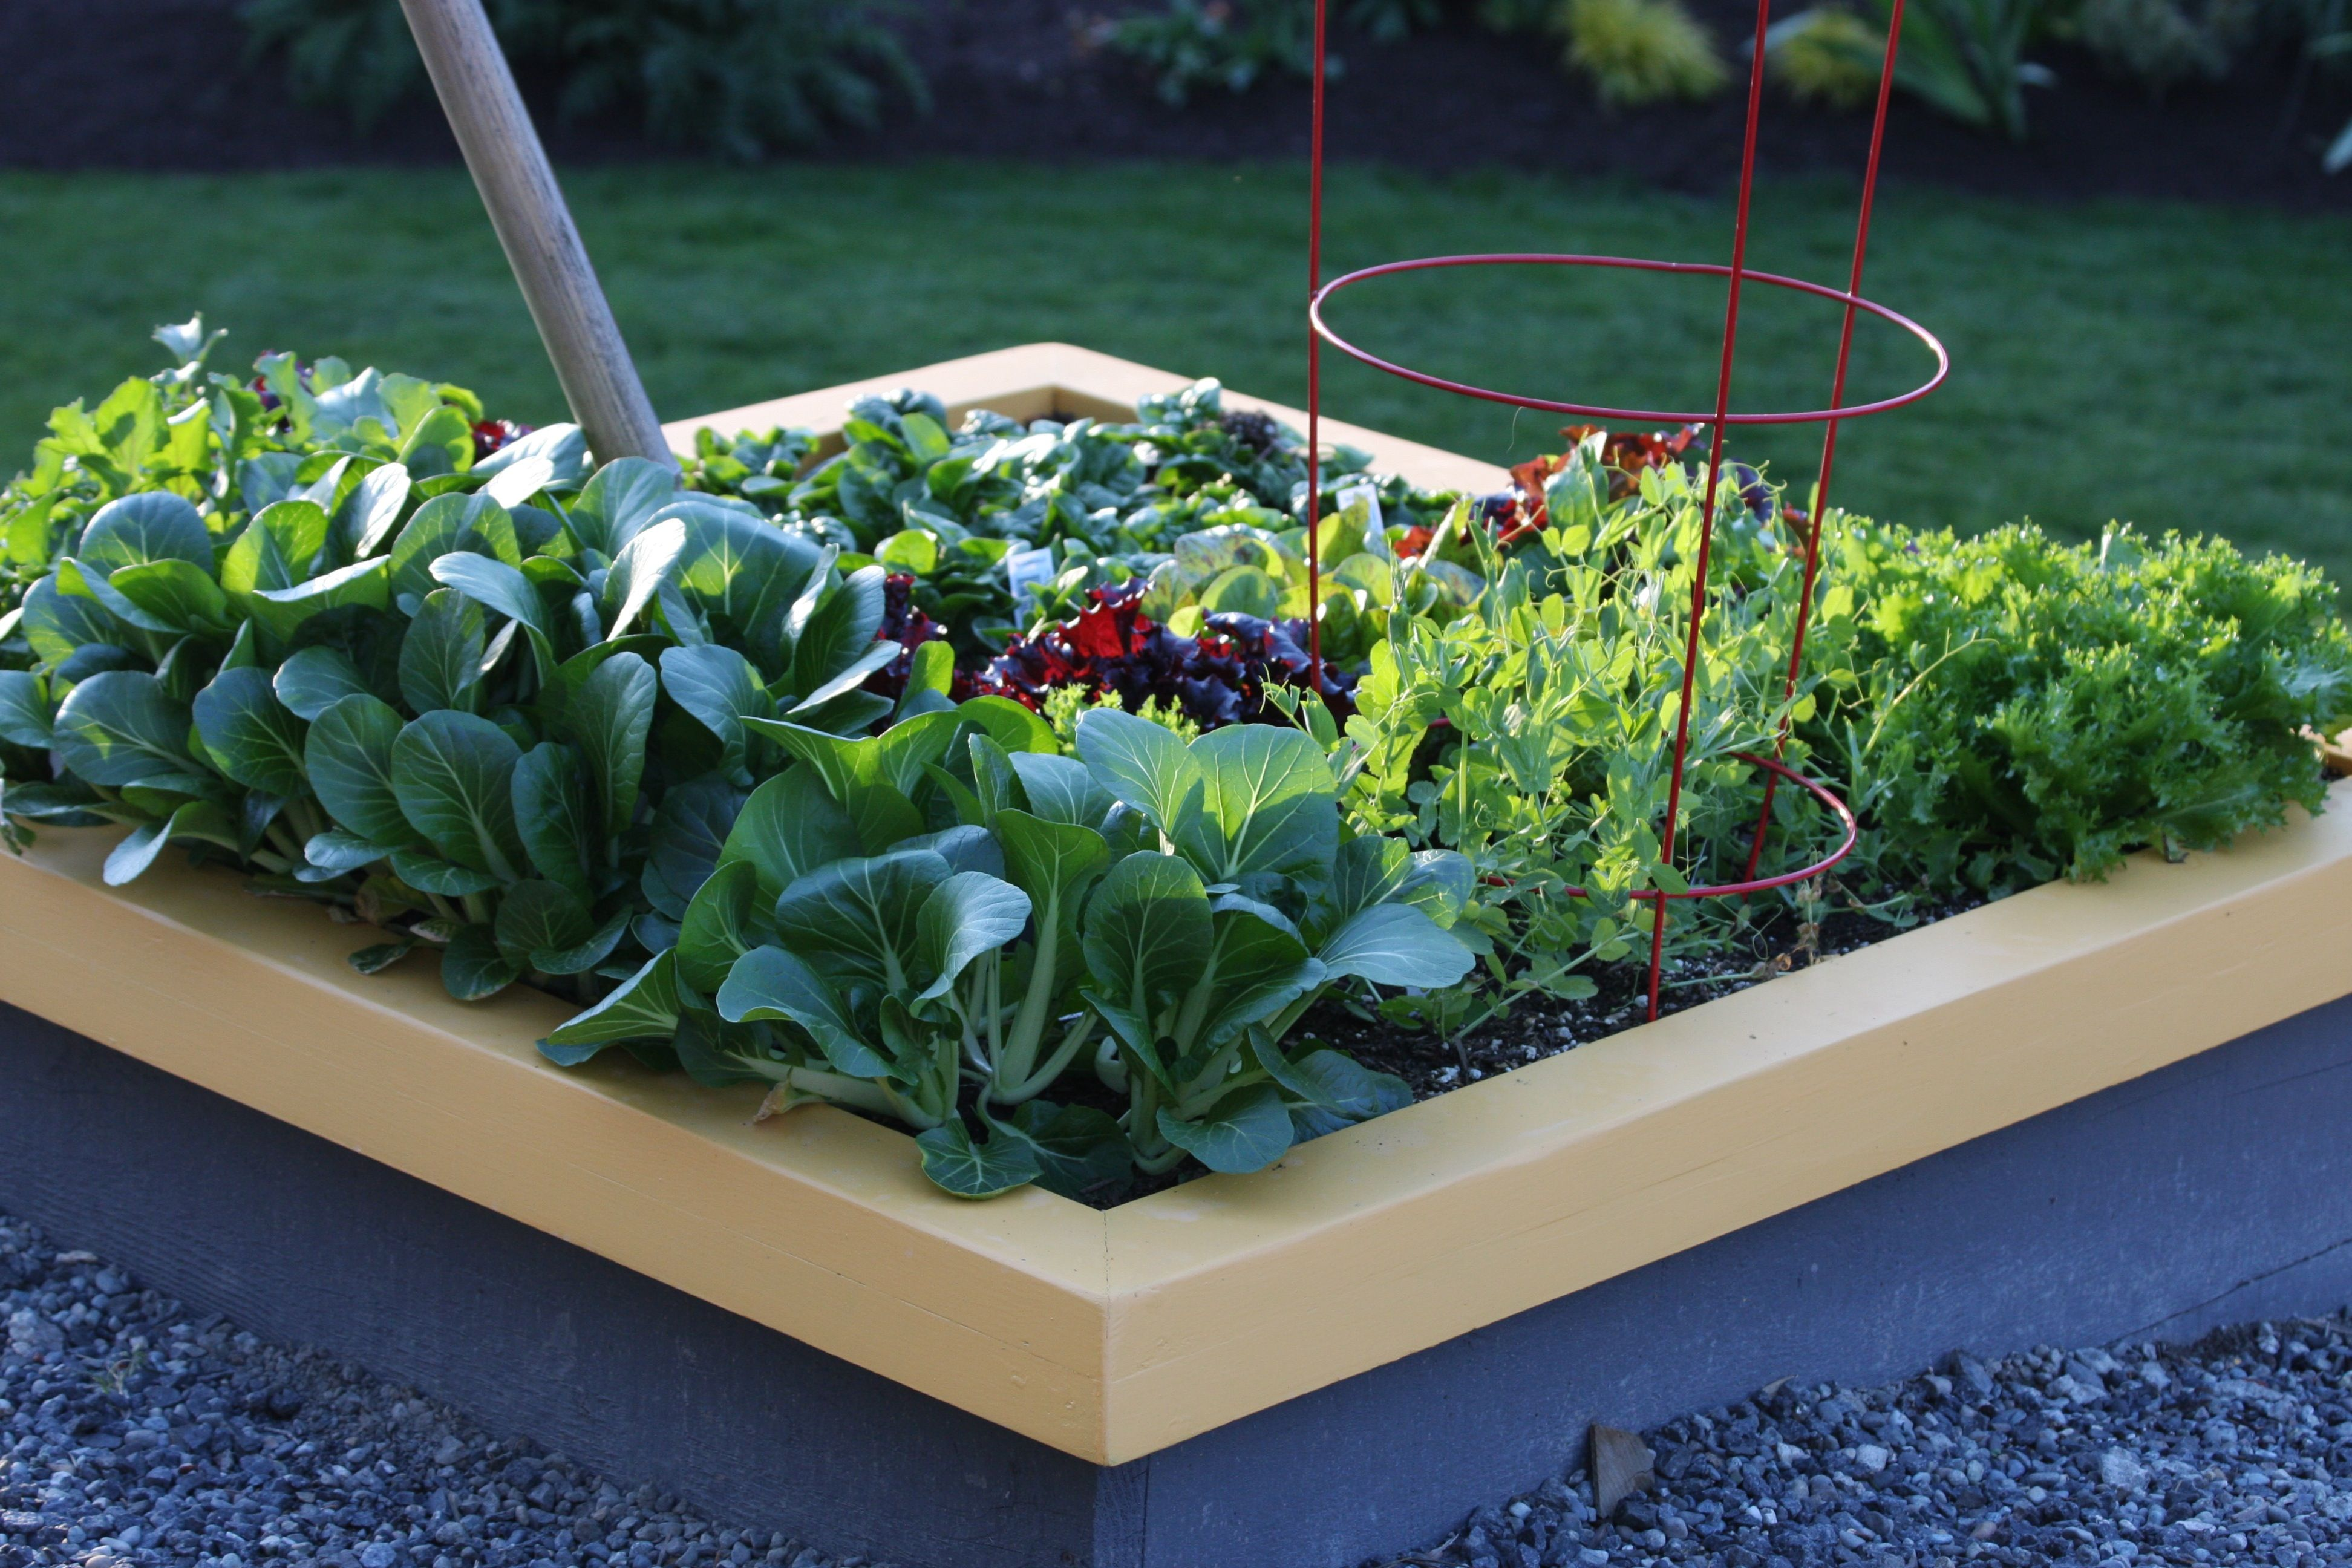 Amazing Planting A Square Foot Salad Garden | Video   How To Grow Your Own Salad  Right